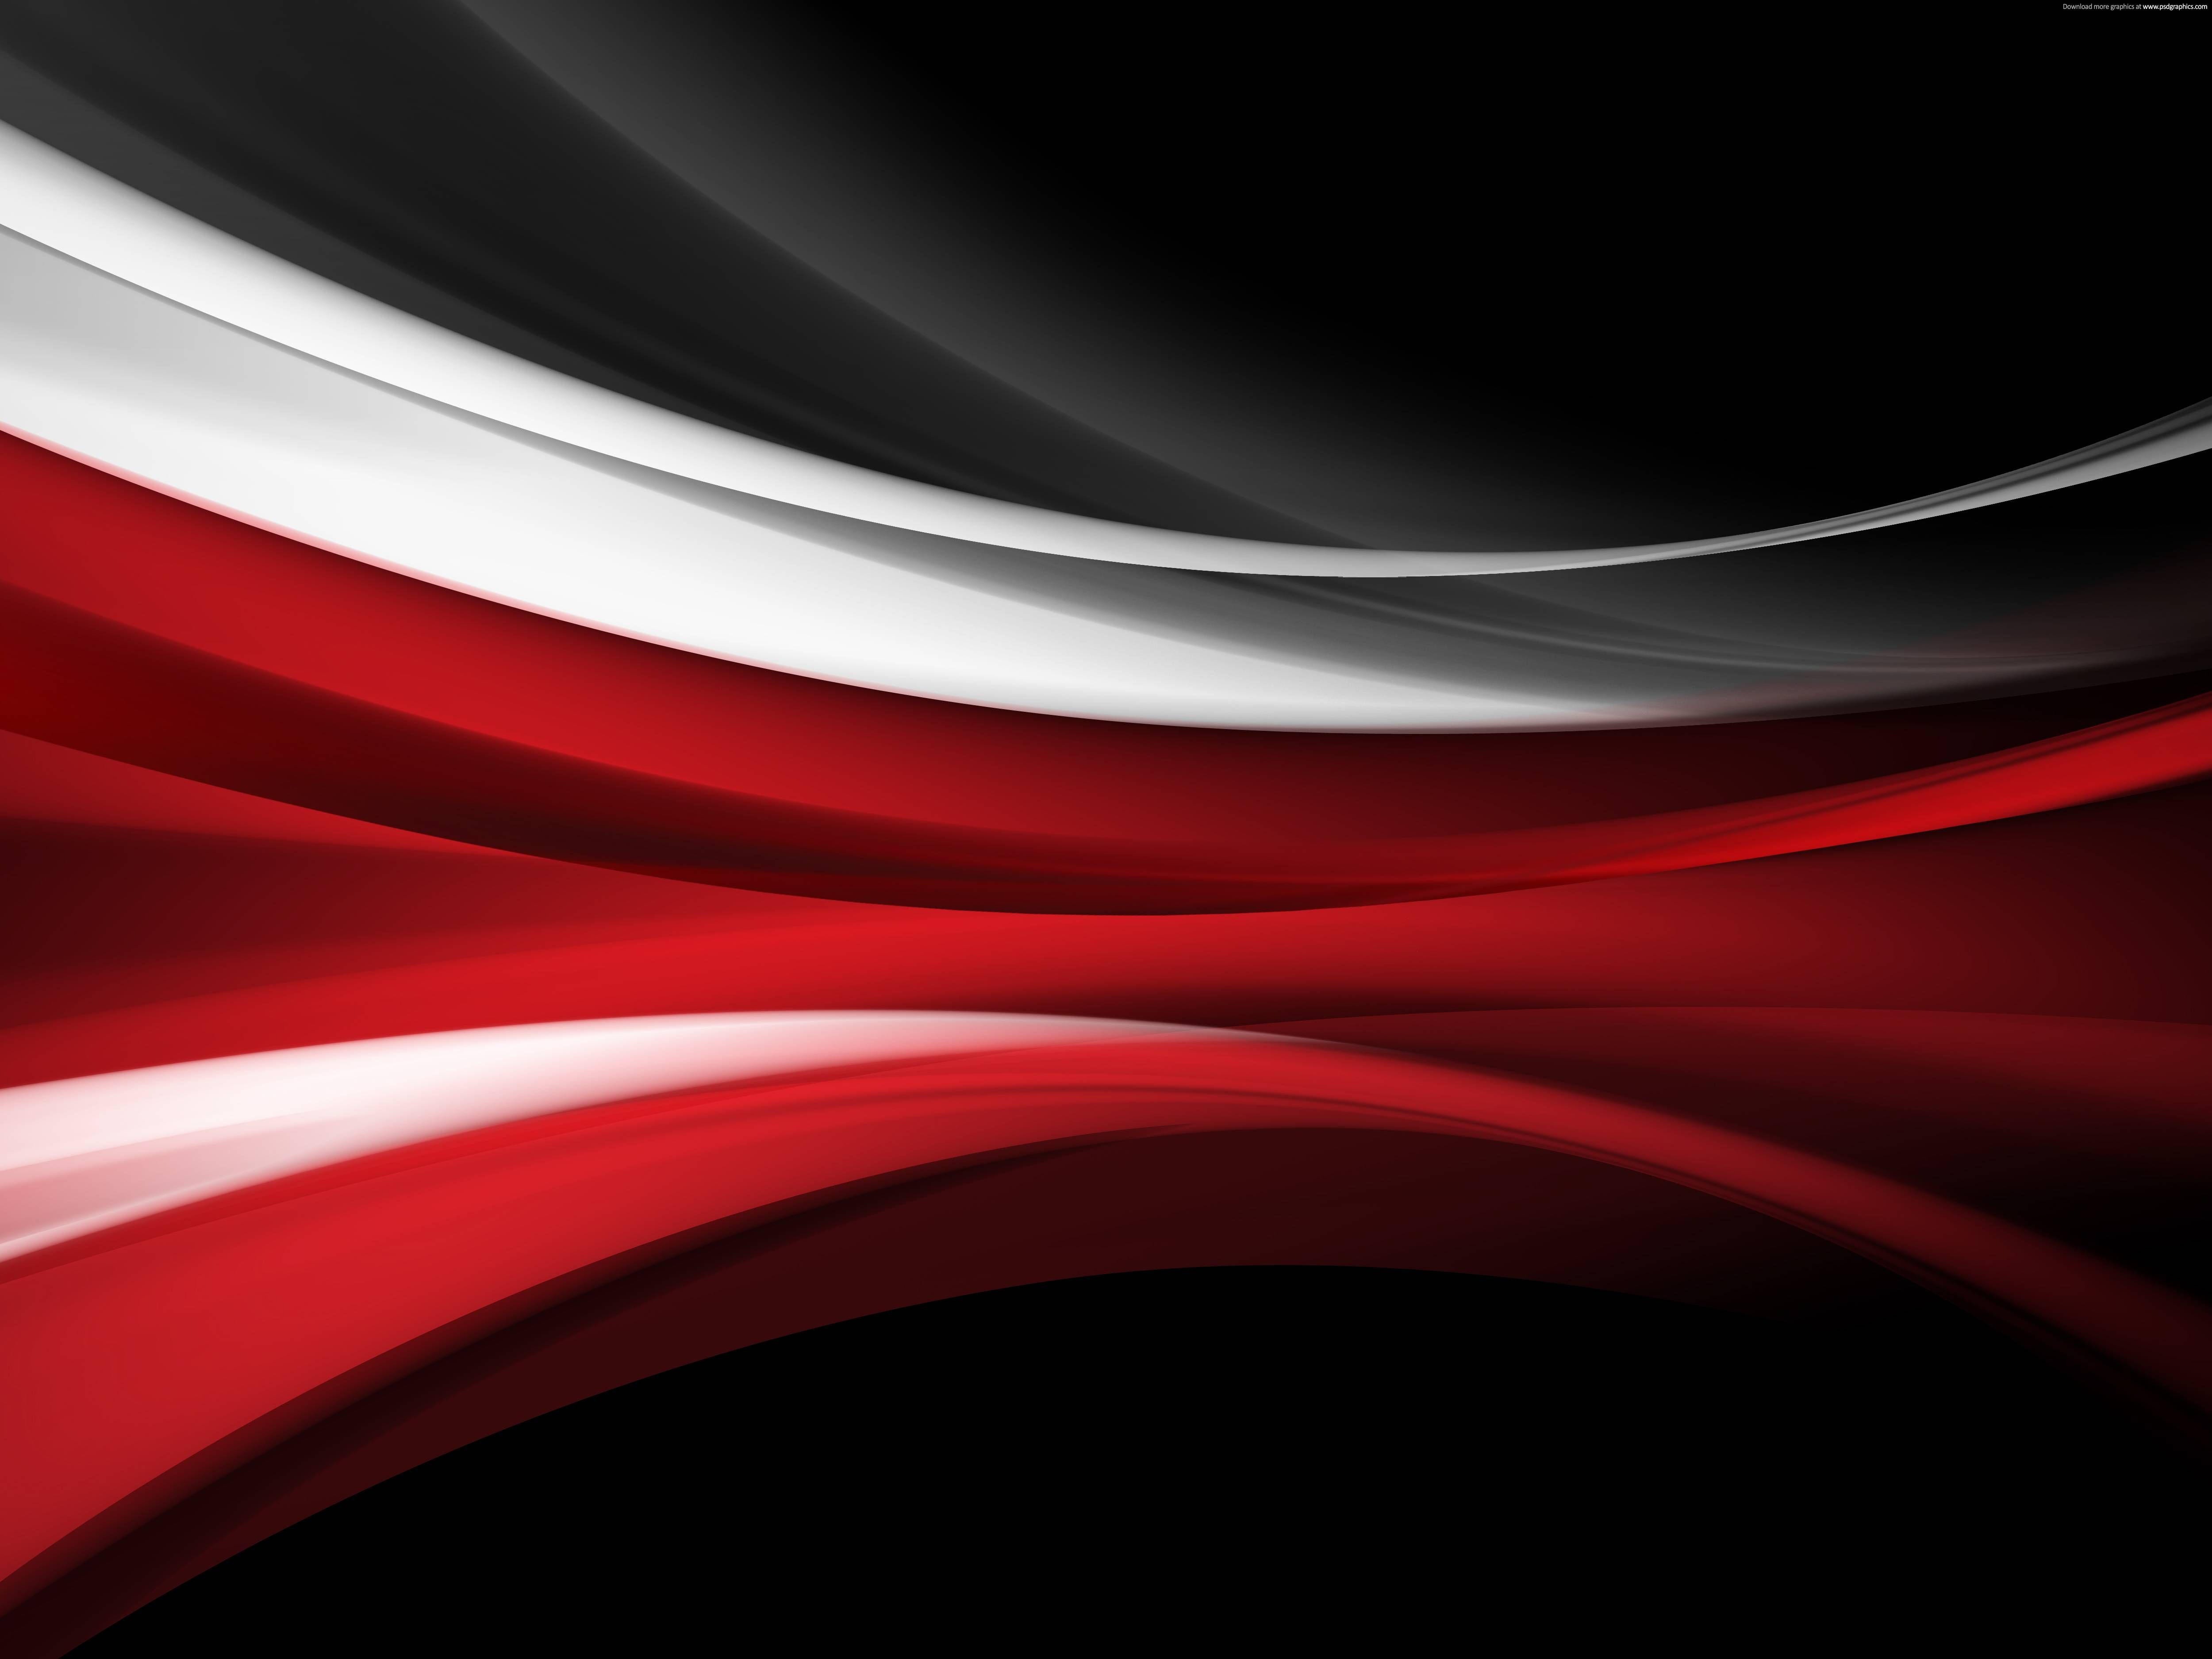 Red And Black Backgrounds Wallpaper Cave Red And Black Background Black Background Wallpaper Black And White Wallpaper